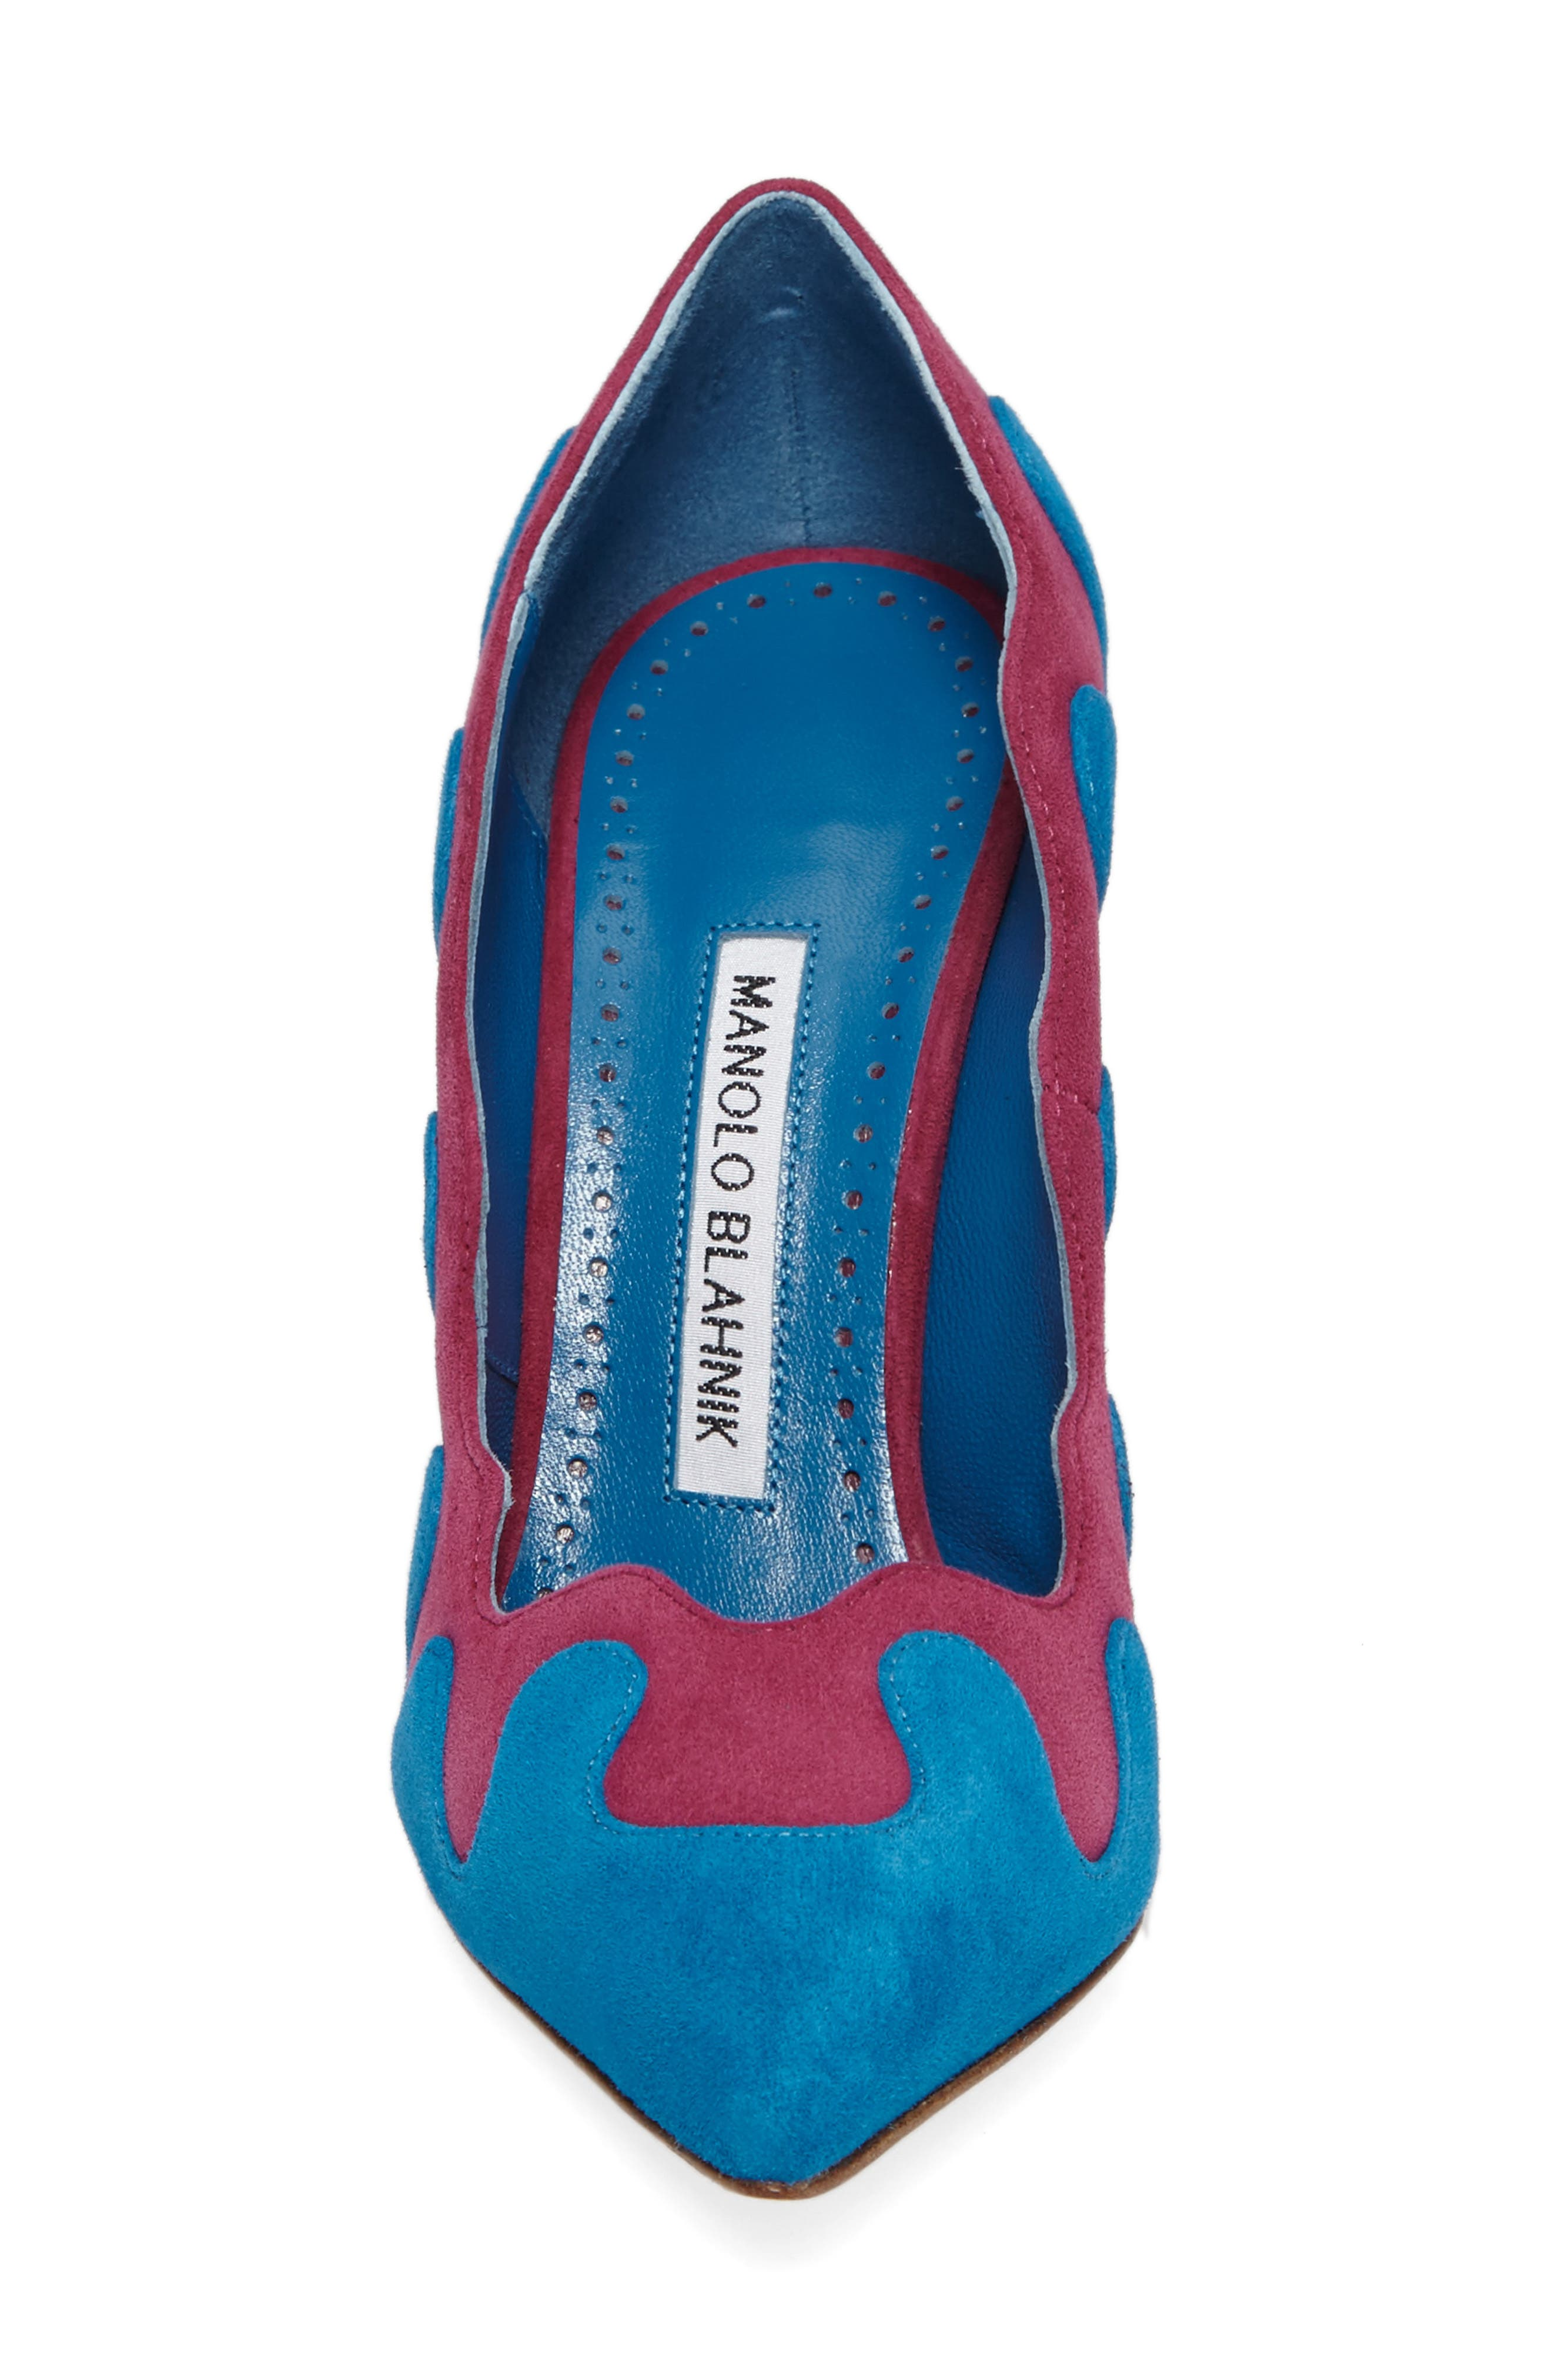 Ulderica Pointy Toe Pump,                             Alternate thumbnail 4, color,                             400